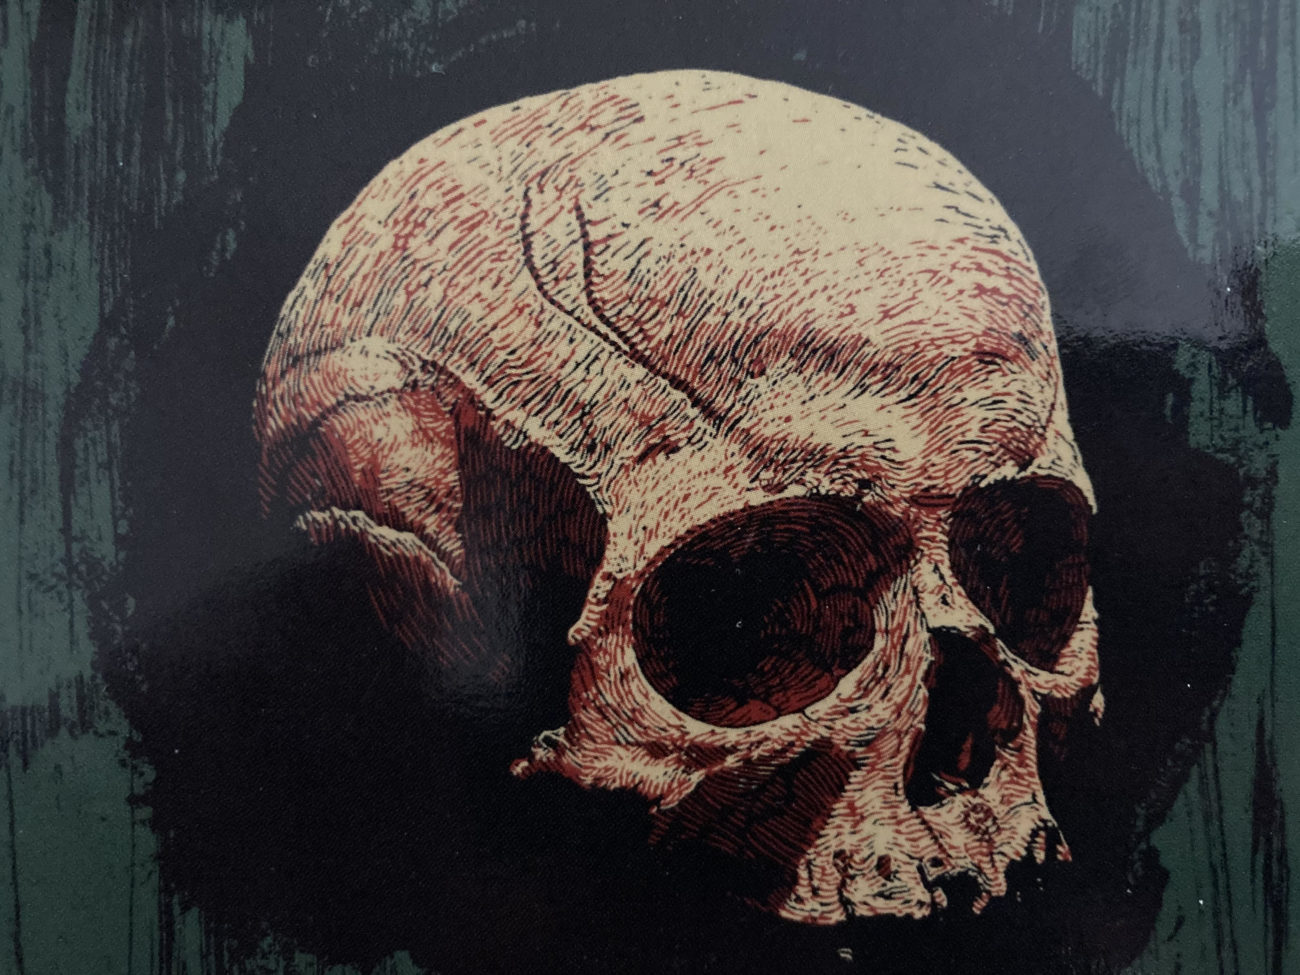 Cover for Succulent Prey features a close up of a human skull